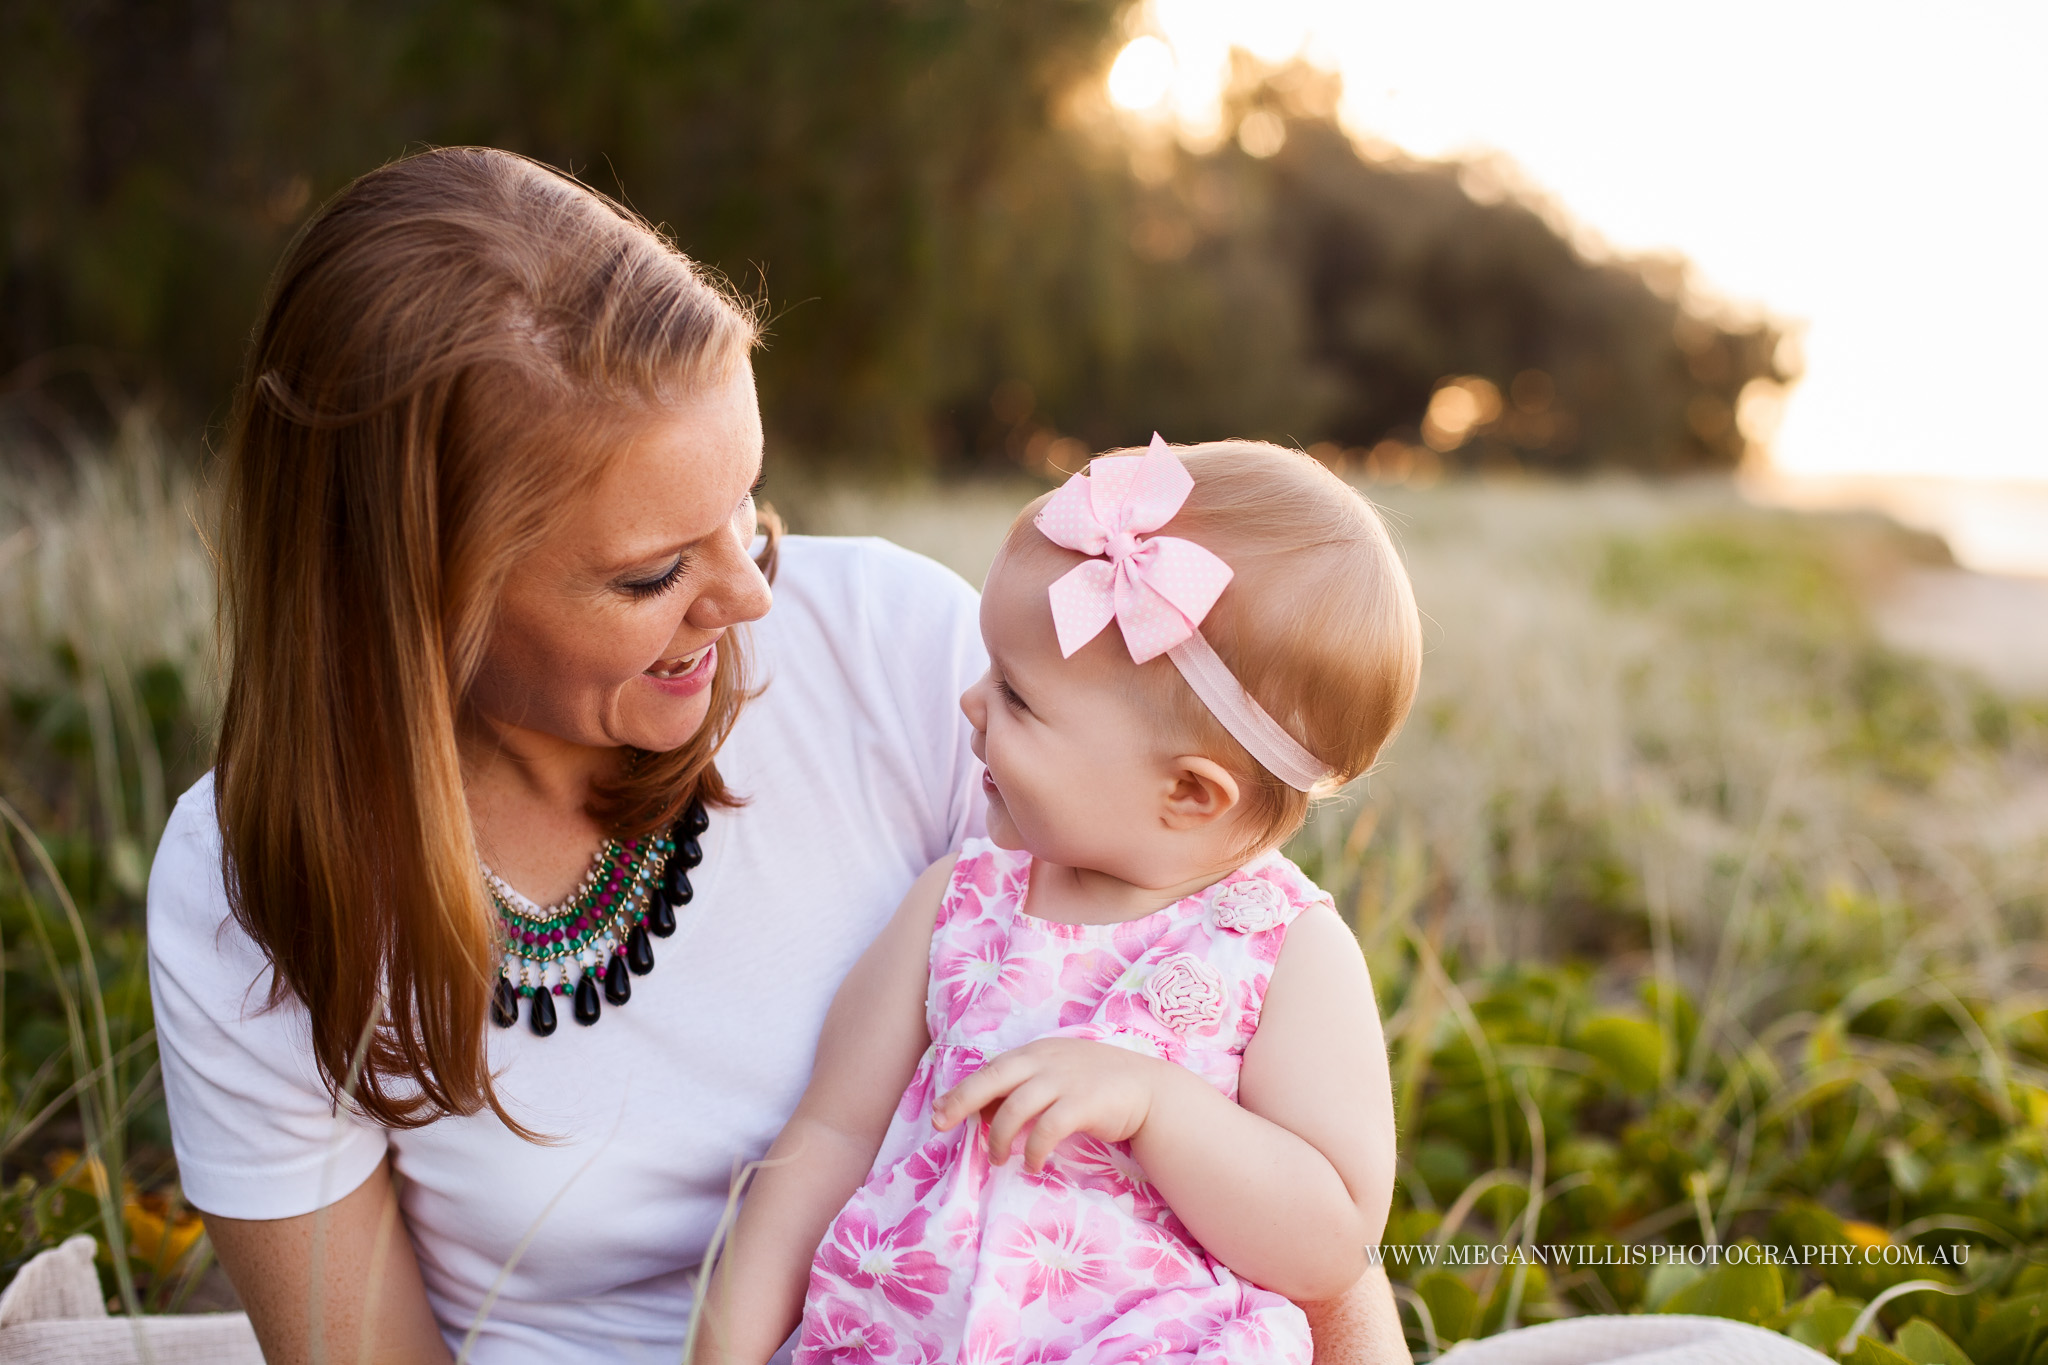 Sercombe Family Session // March 2015